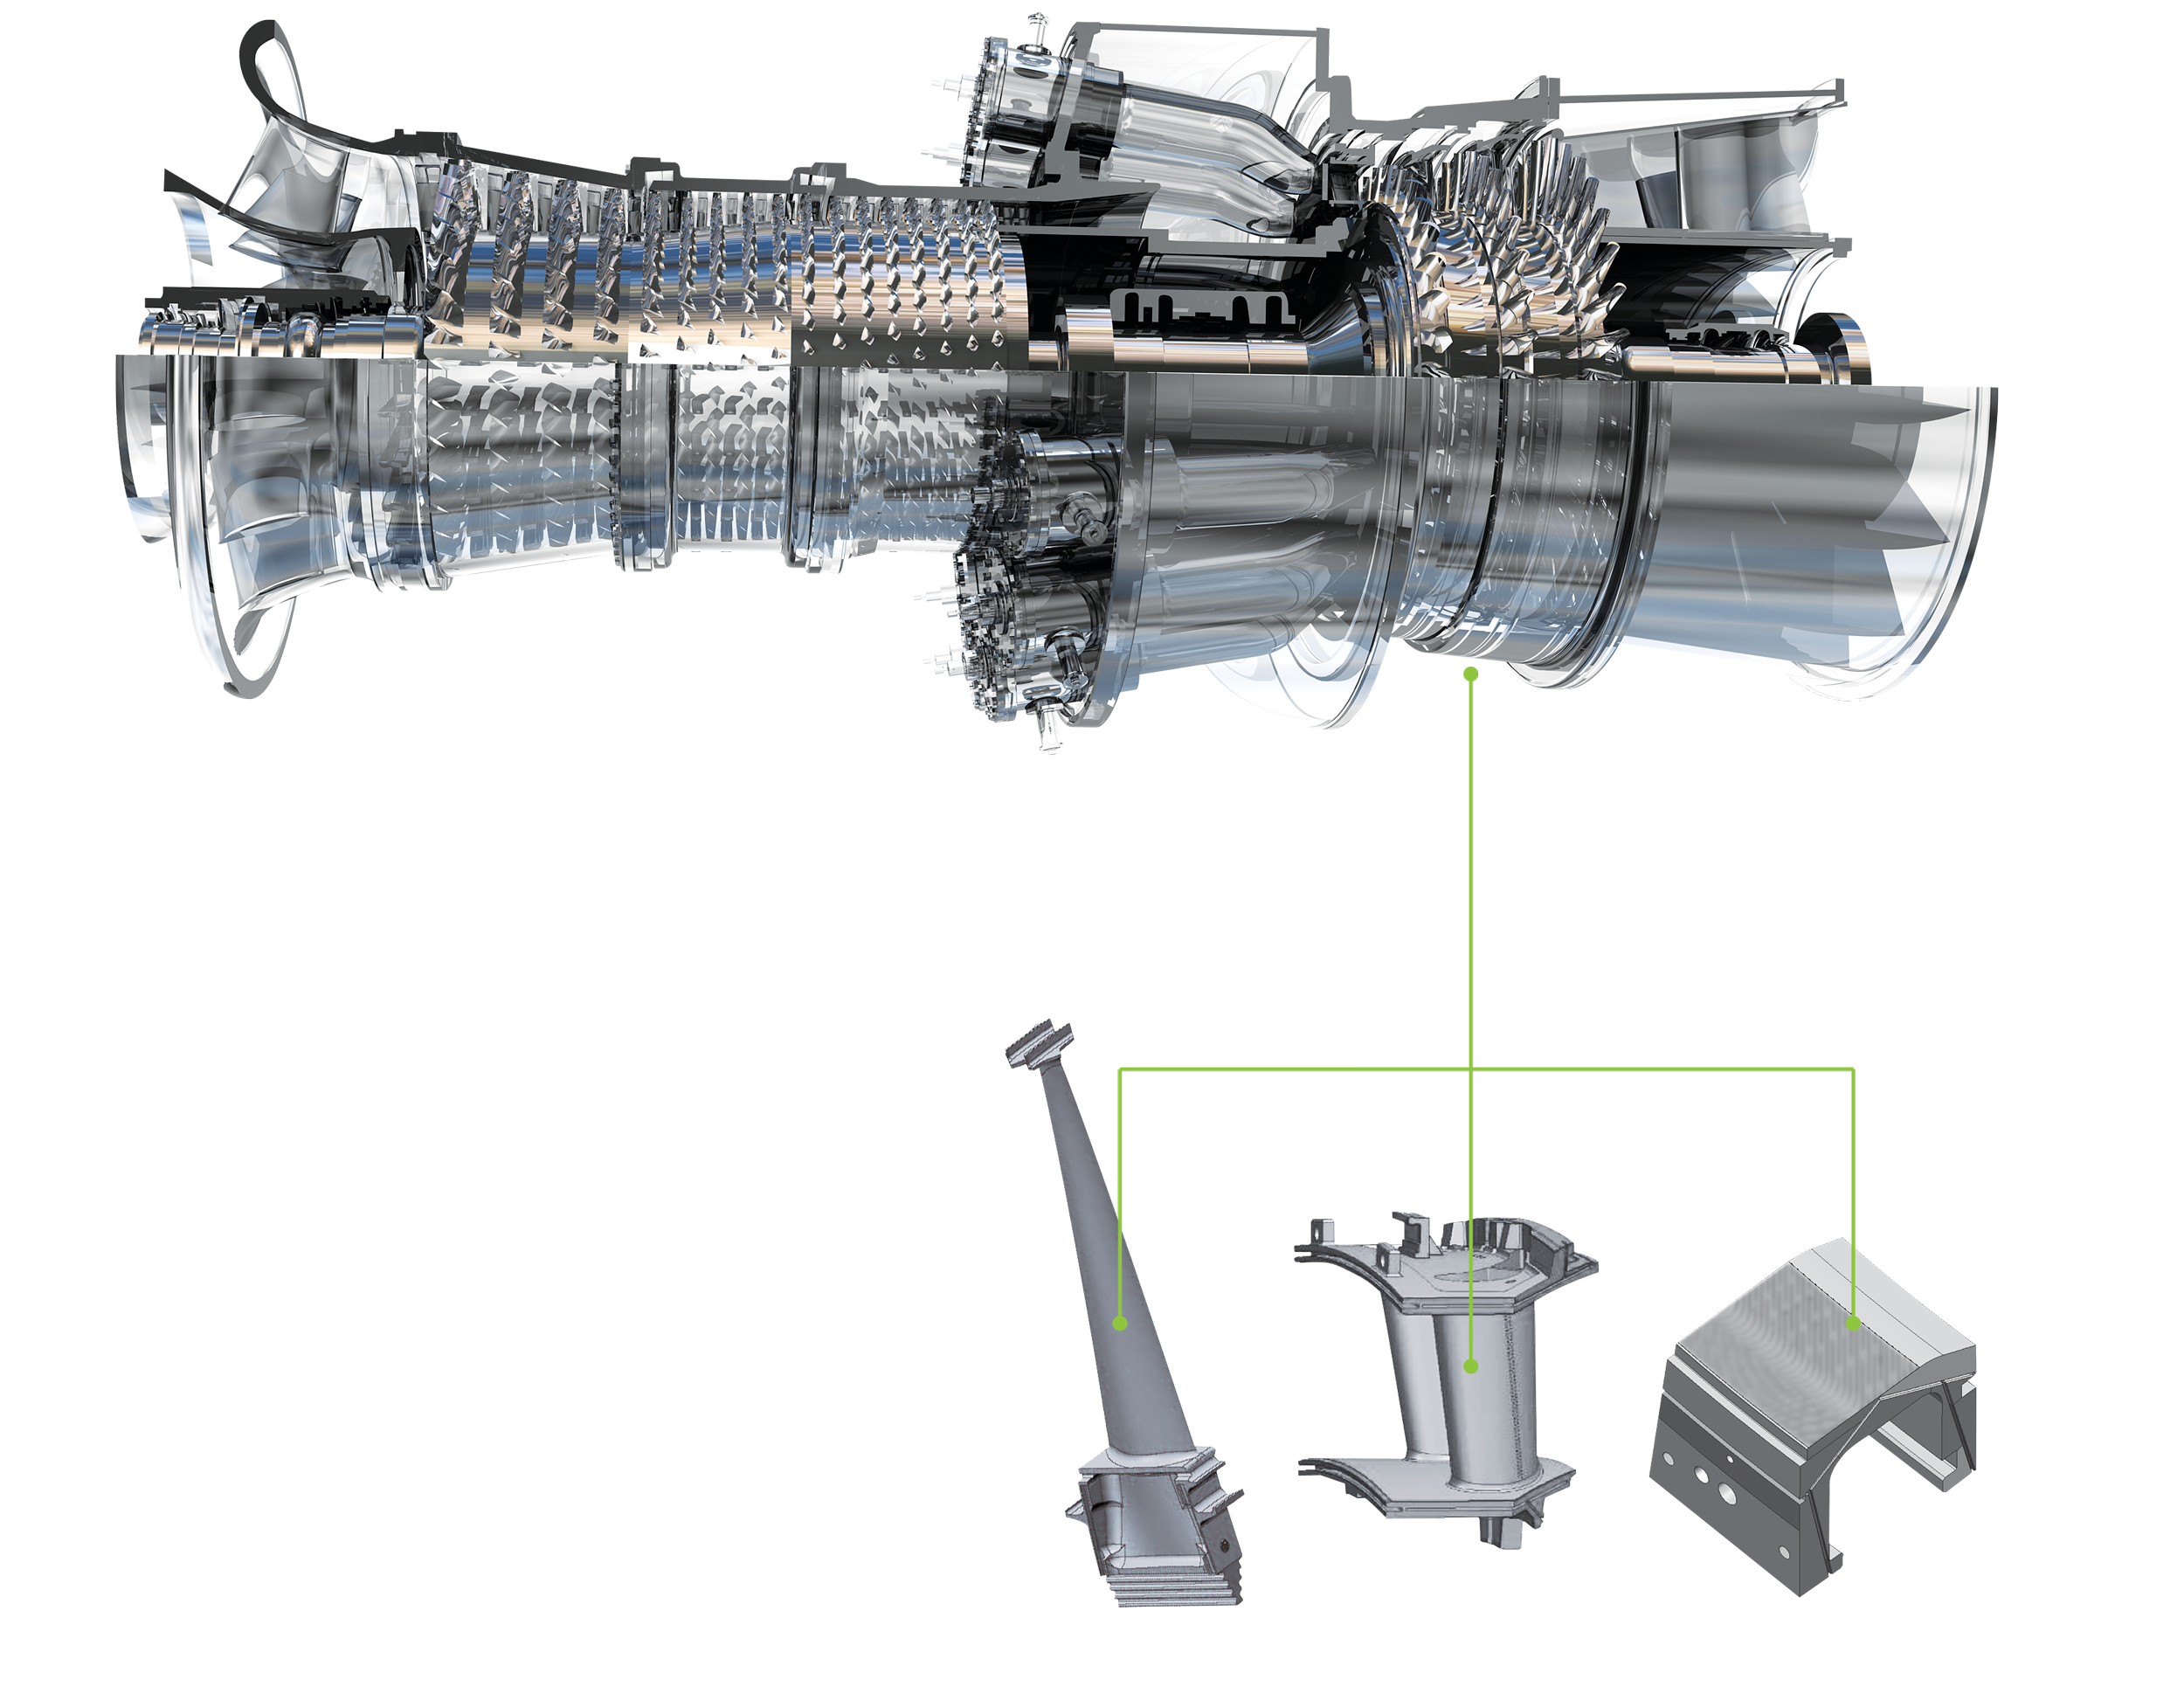 GE's High-Performing Advanced Gas Path Solution Expanded to